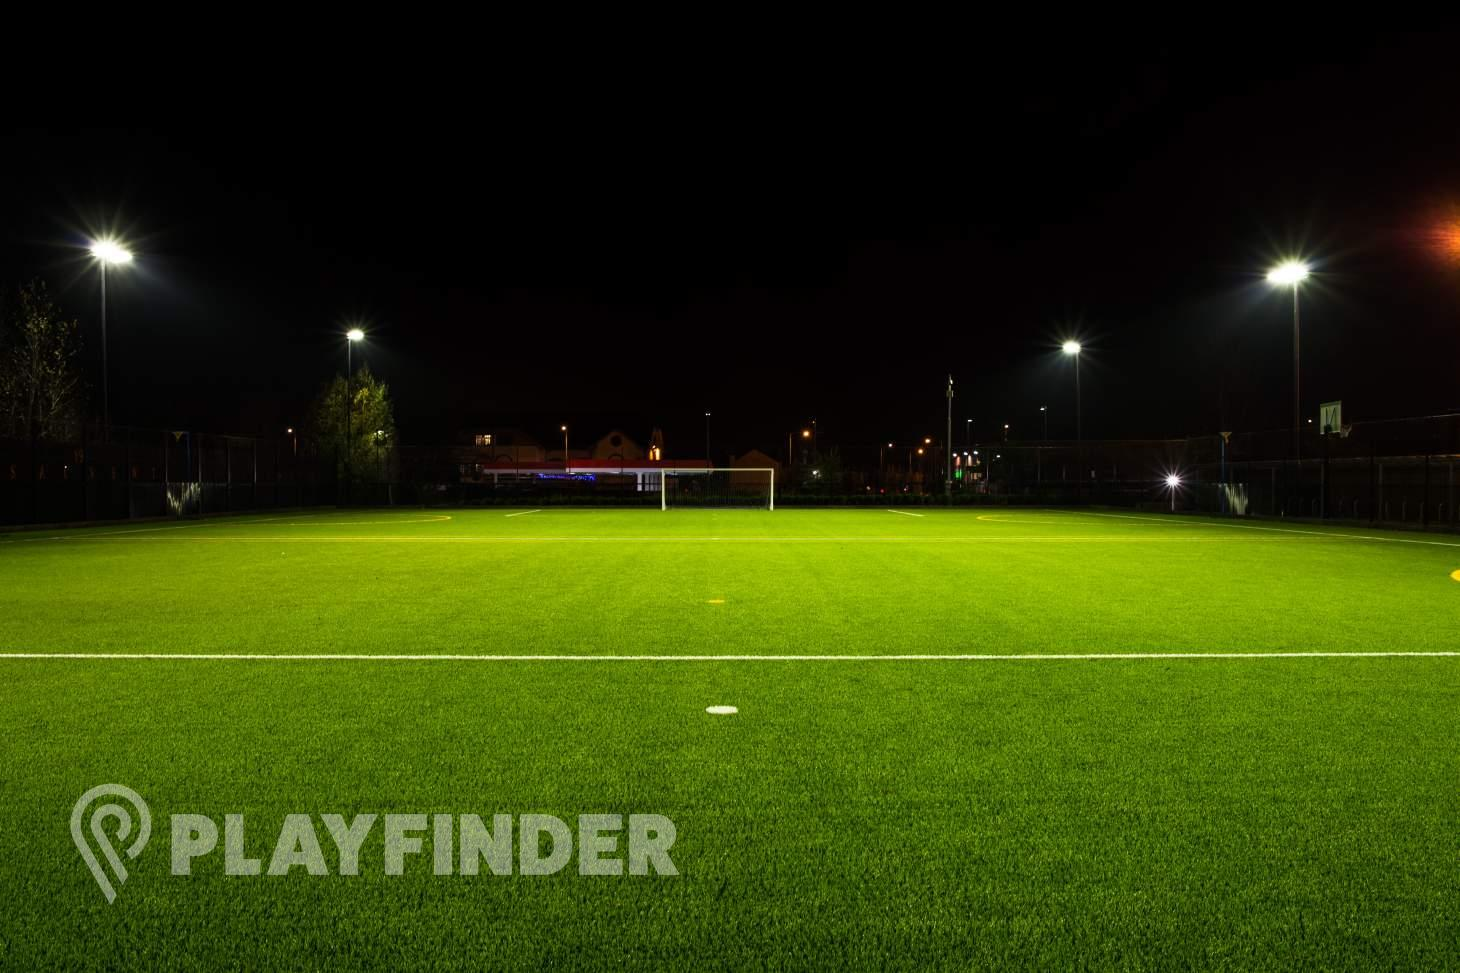 Isaac Newton Academy 5 a side | 3G Astroturf football pitch